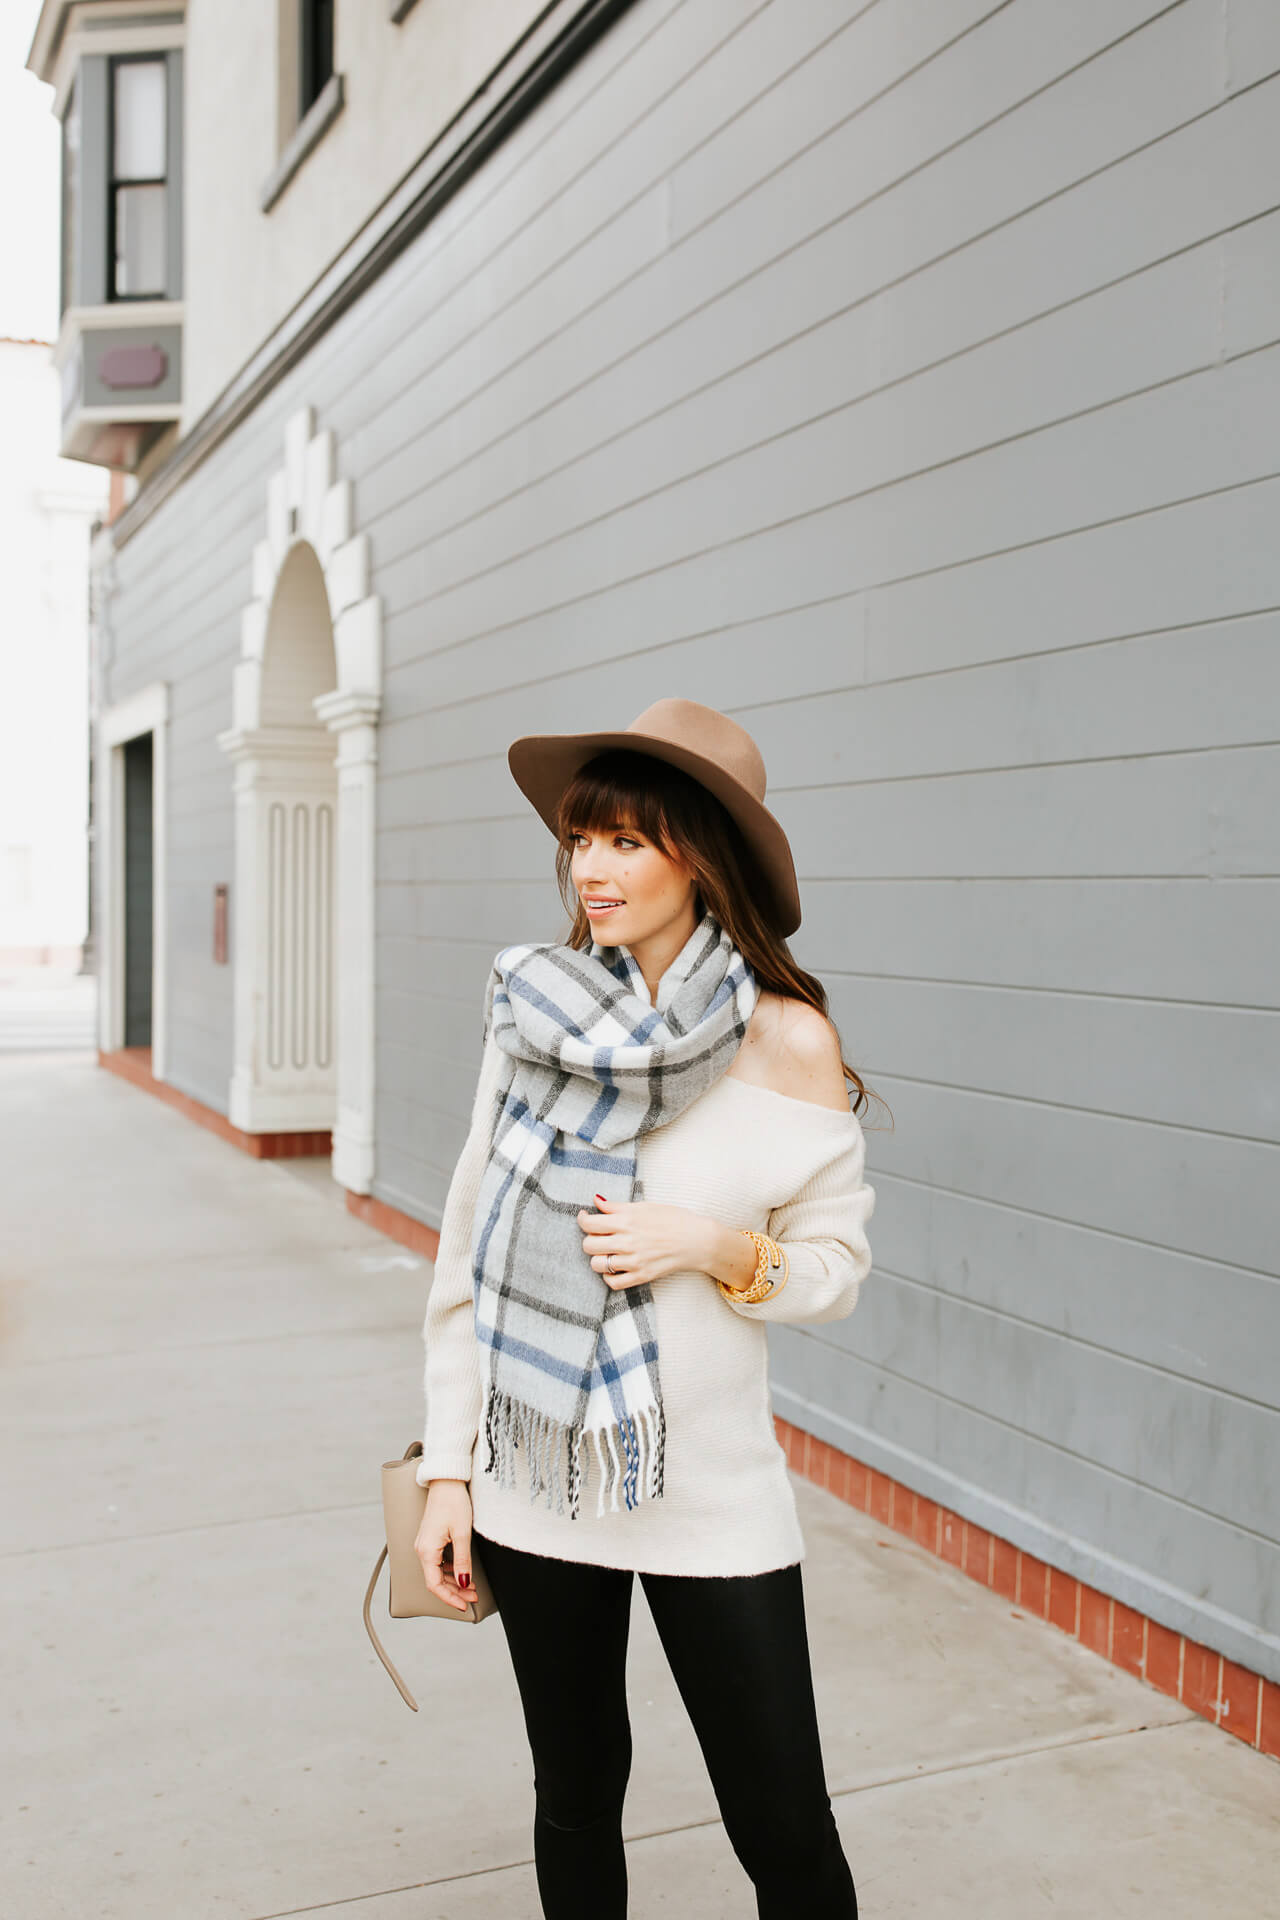 This fall outfit looks so cute with a floppy hat! - M Loves M @marmar